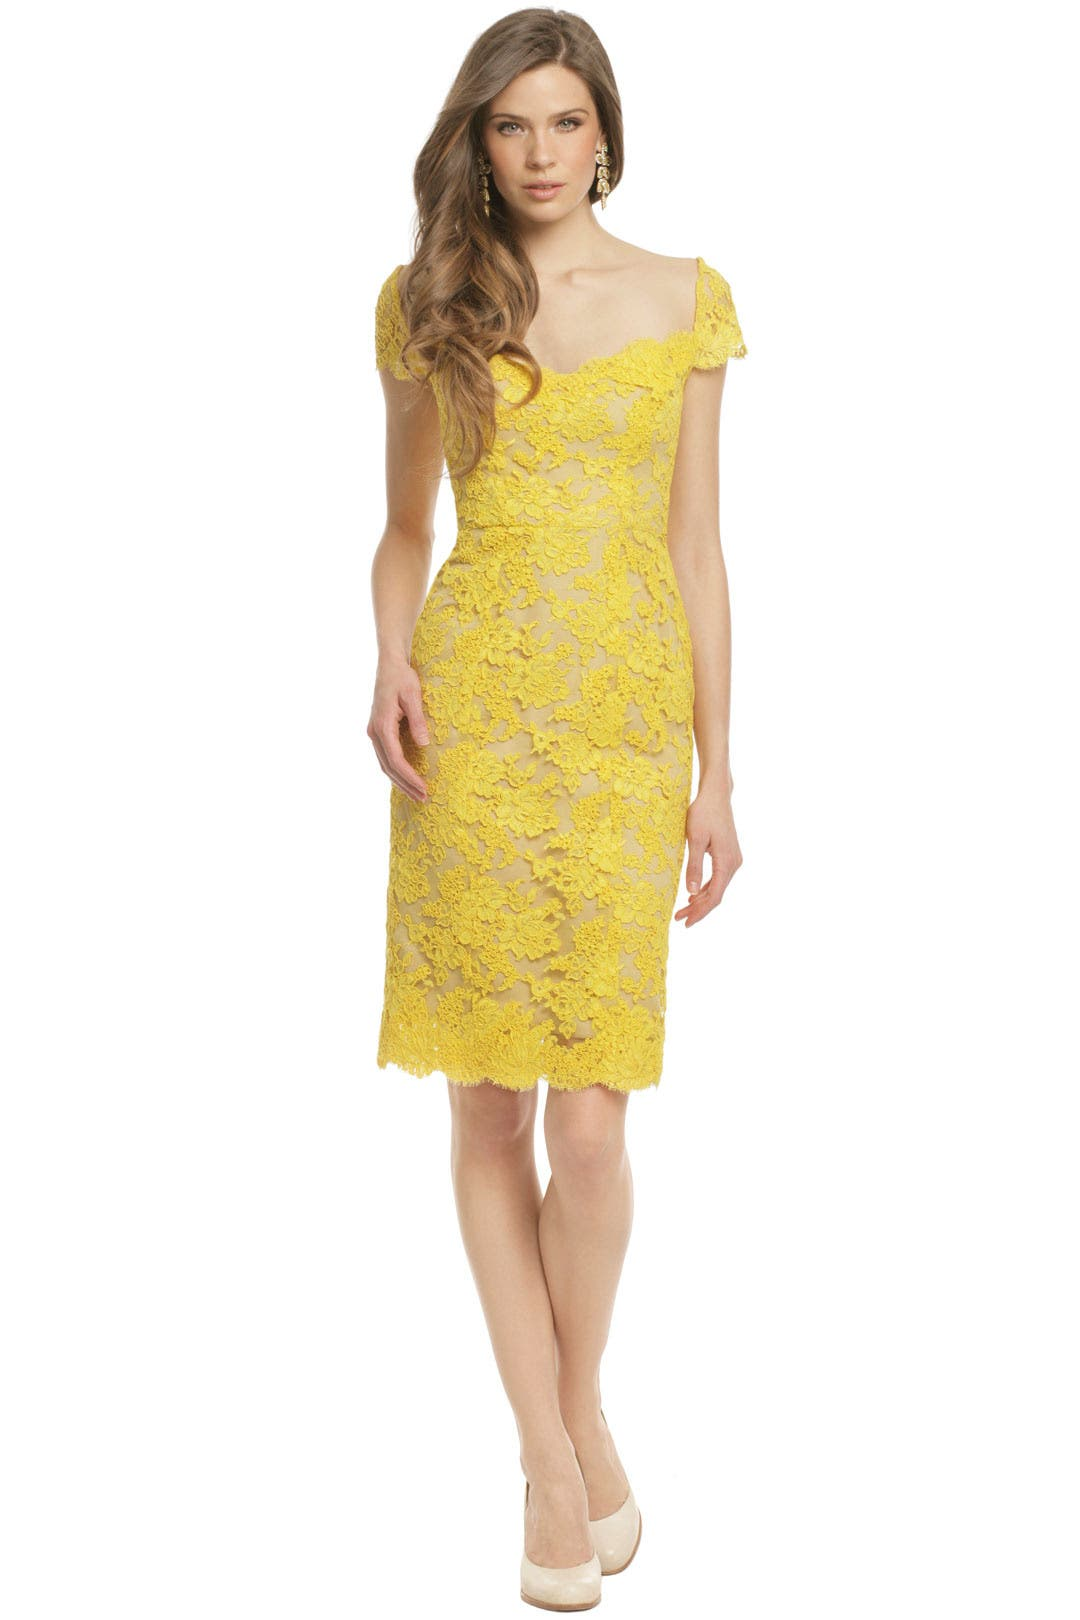 Canary Bennet Dress by Reem Acra for $698 | Rent the Runway